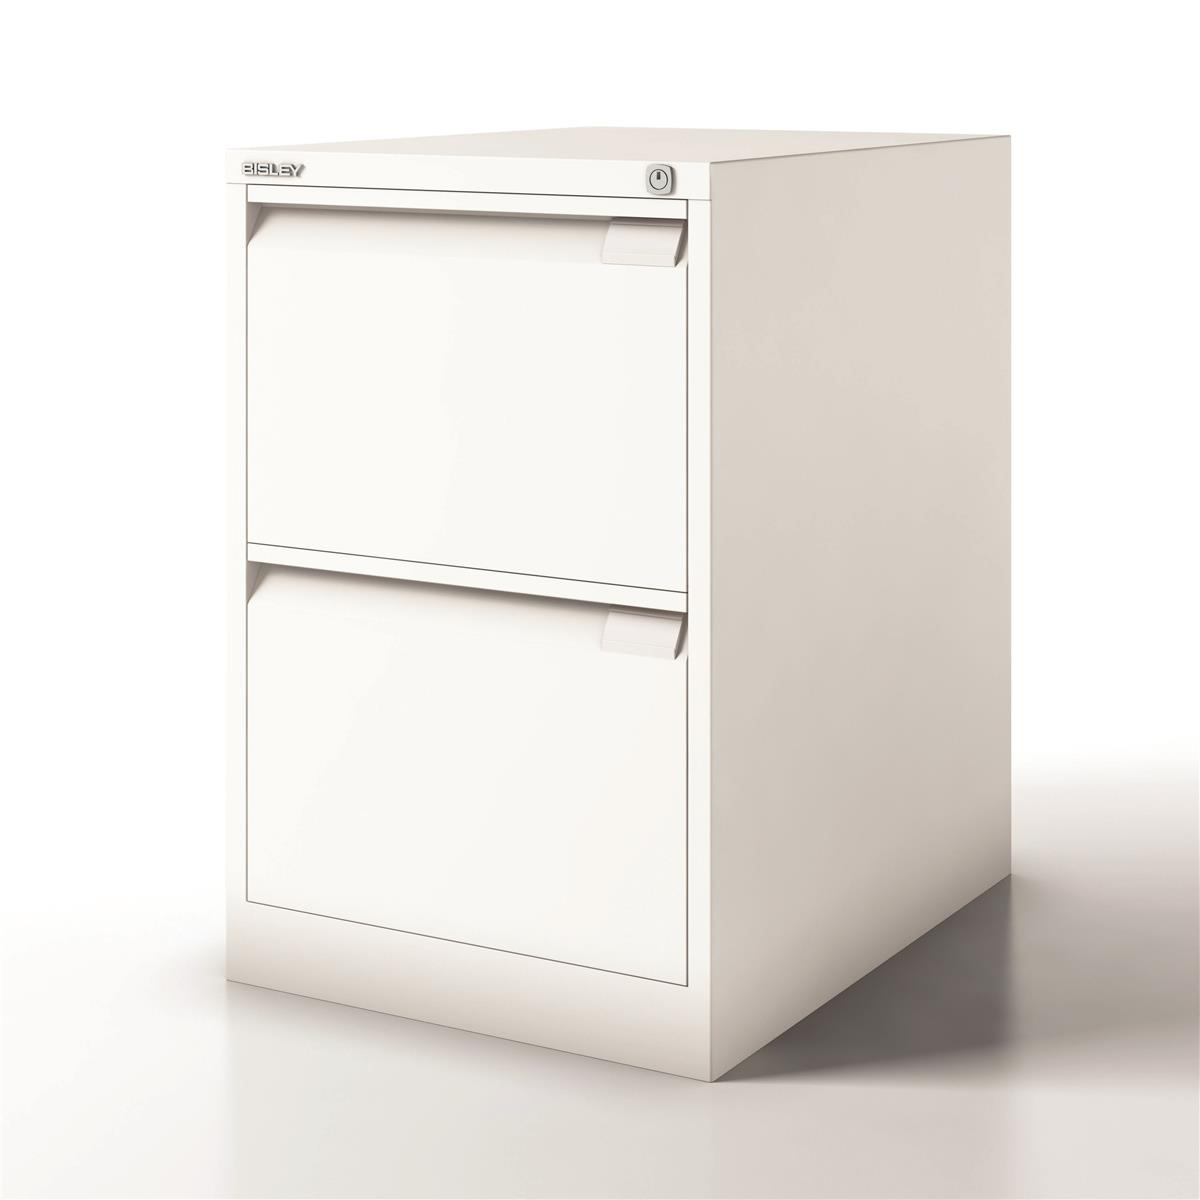 Filing cabinets or accesories Bisley Filing Cabinet 2 Drawer 470x622x711mm White Ref 1623-ab9